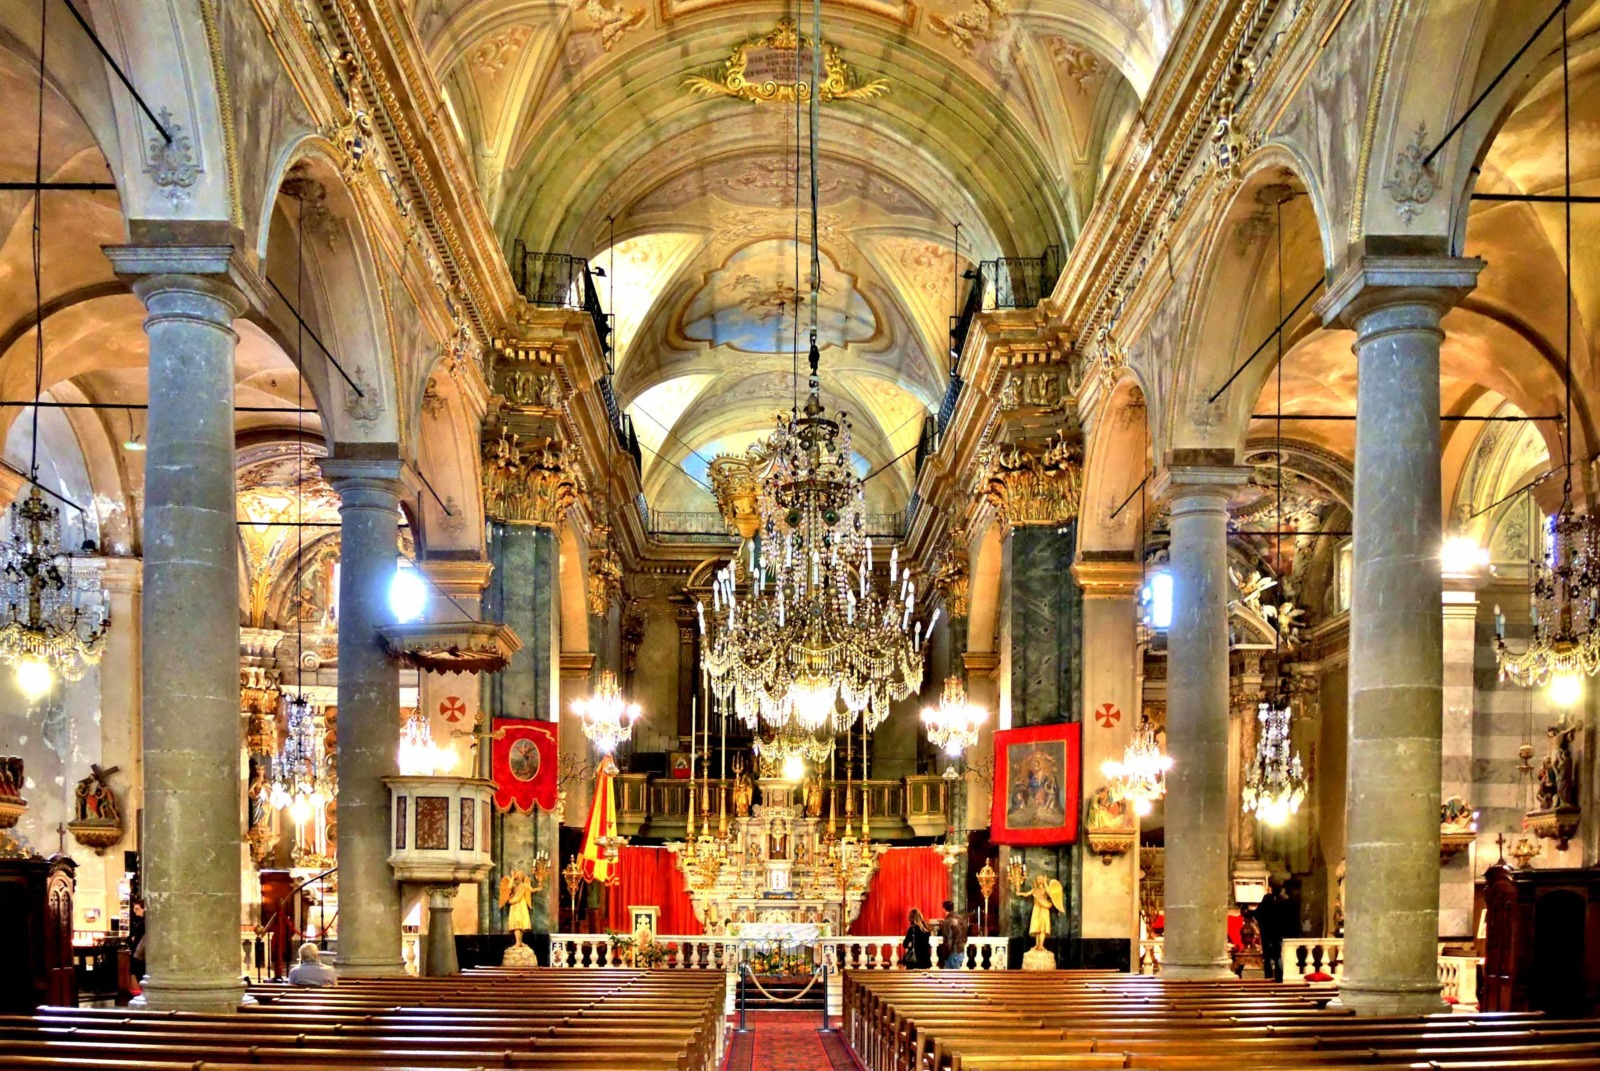 Inside the Saint-Michel basilica in Menton © Espirat - licence [CC BY-SA 4.0] from Wikimedia Commons